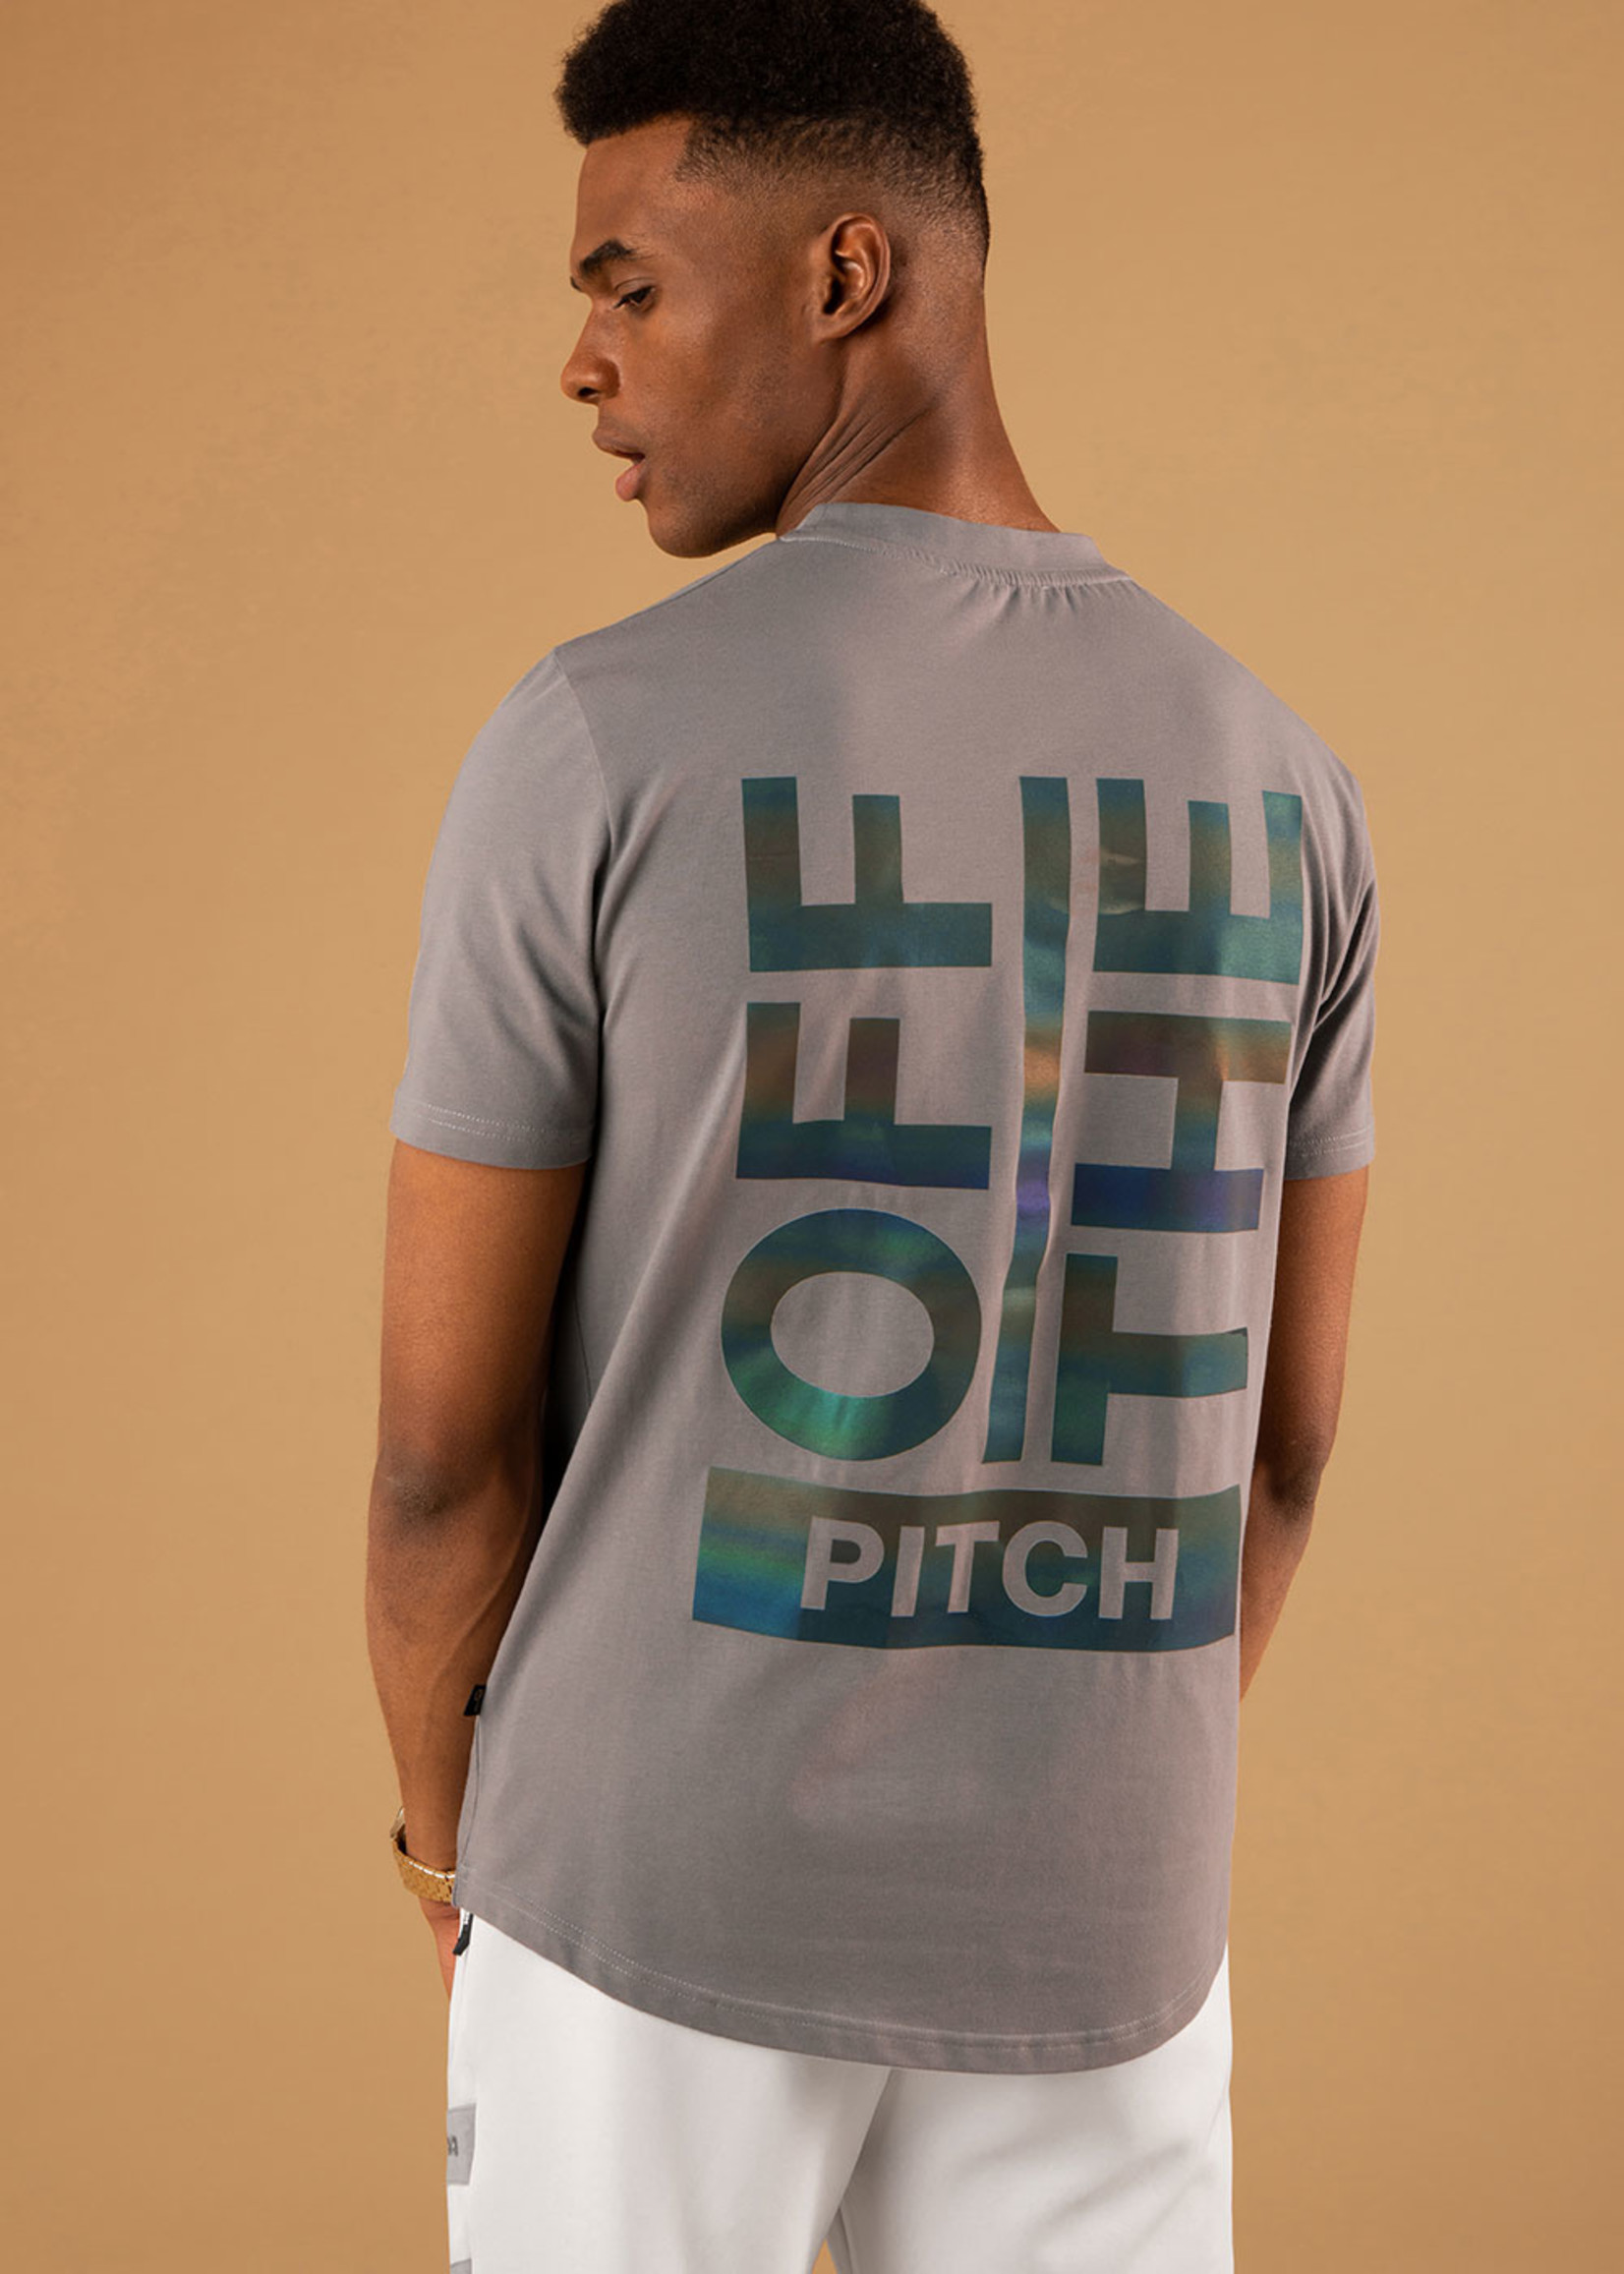 OFF THE PITCH OFF THE PITCH The Saturn Tee - Grey